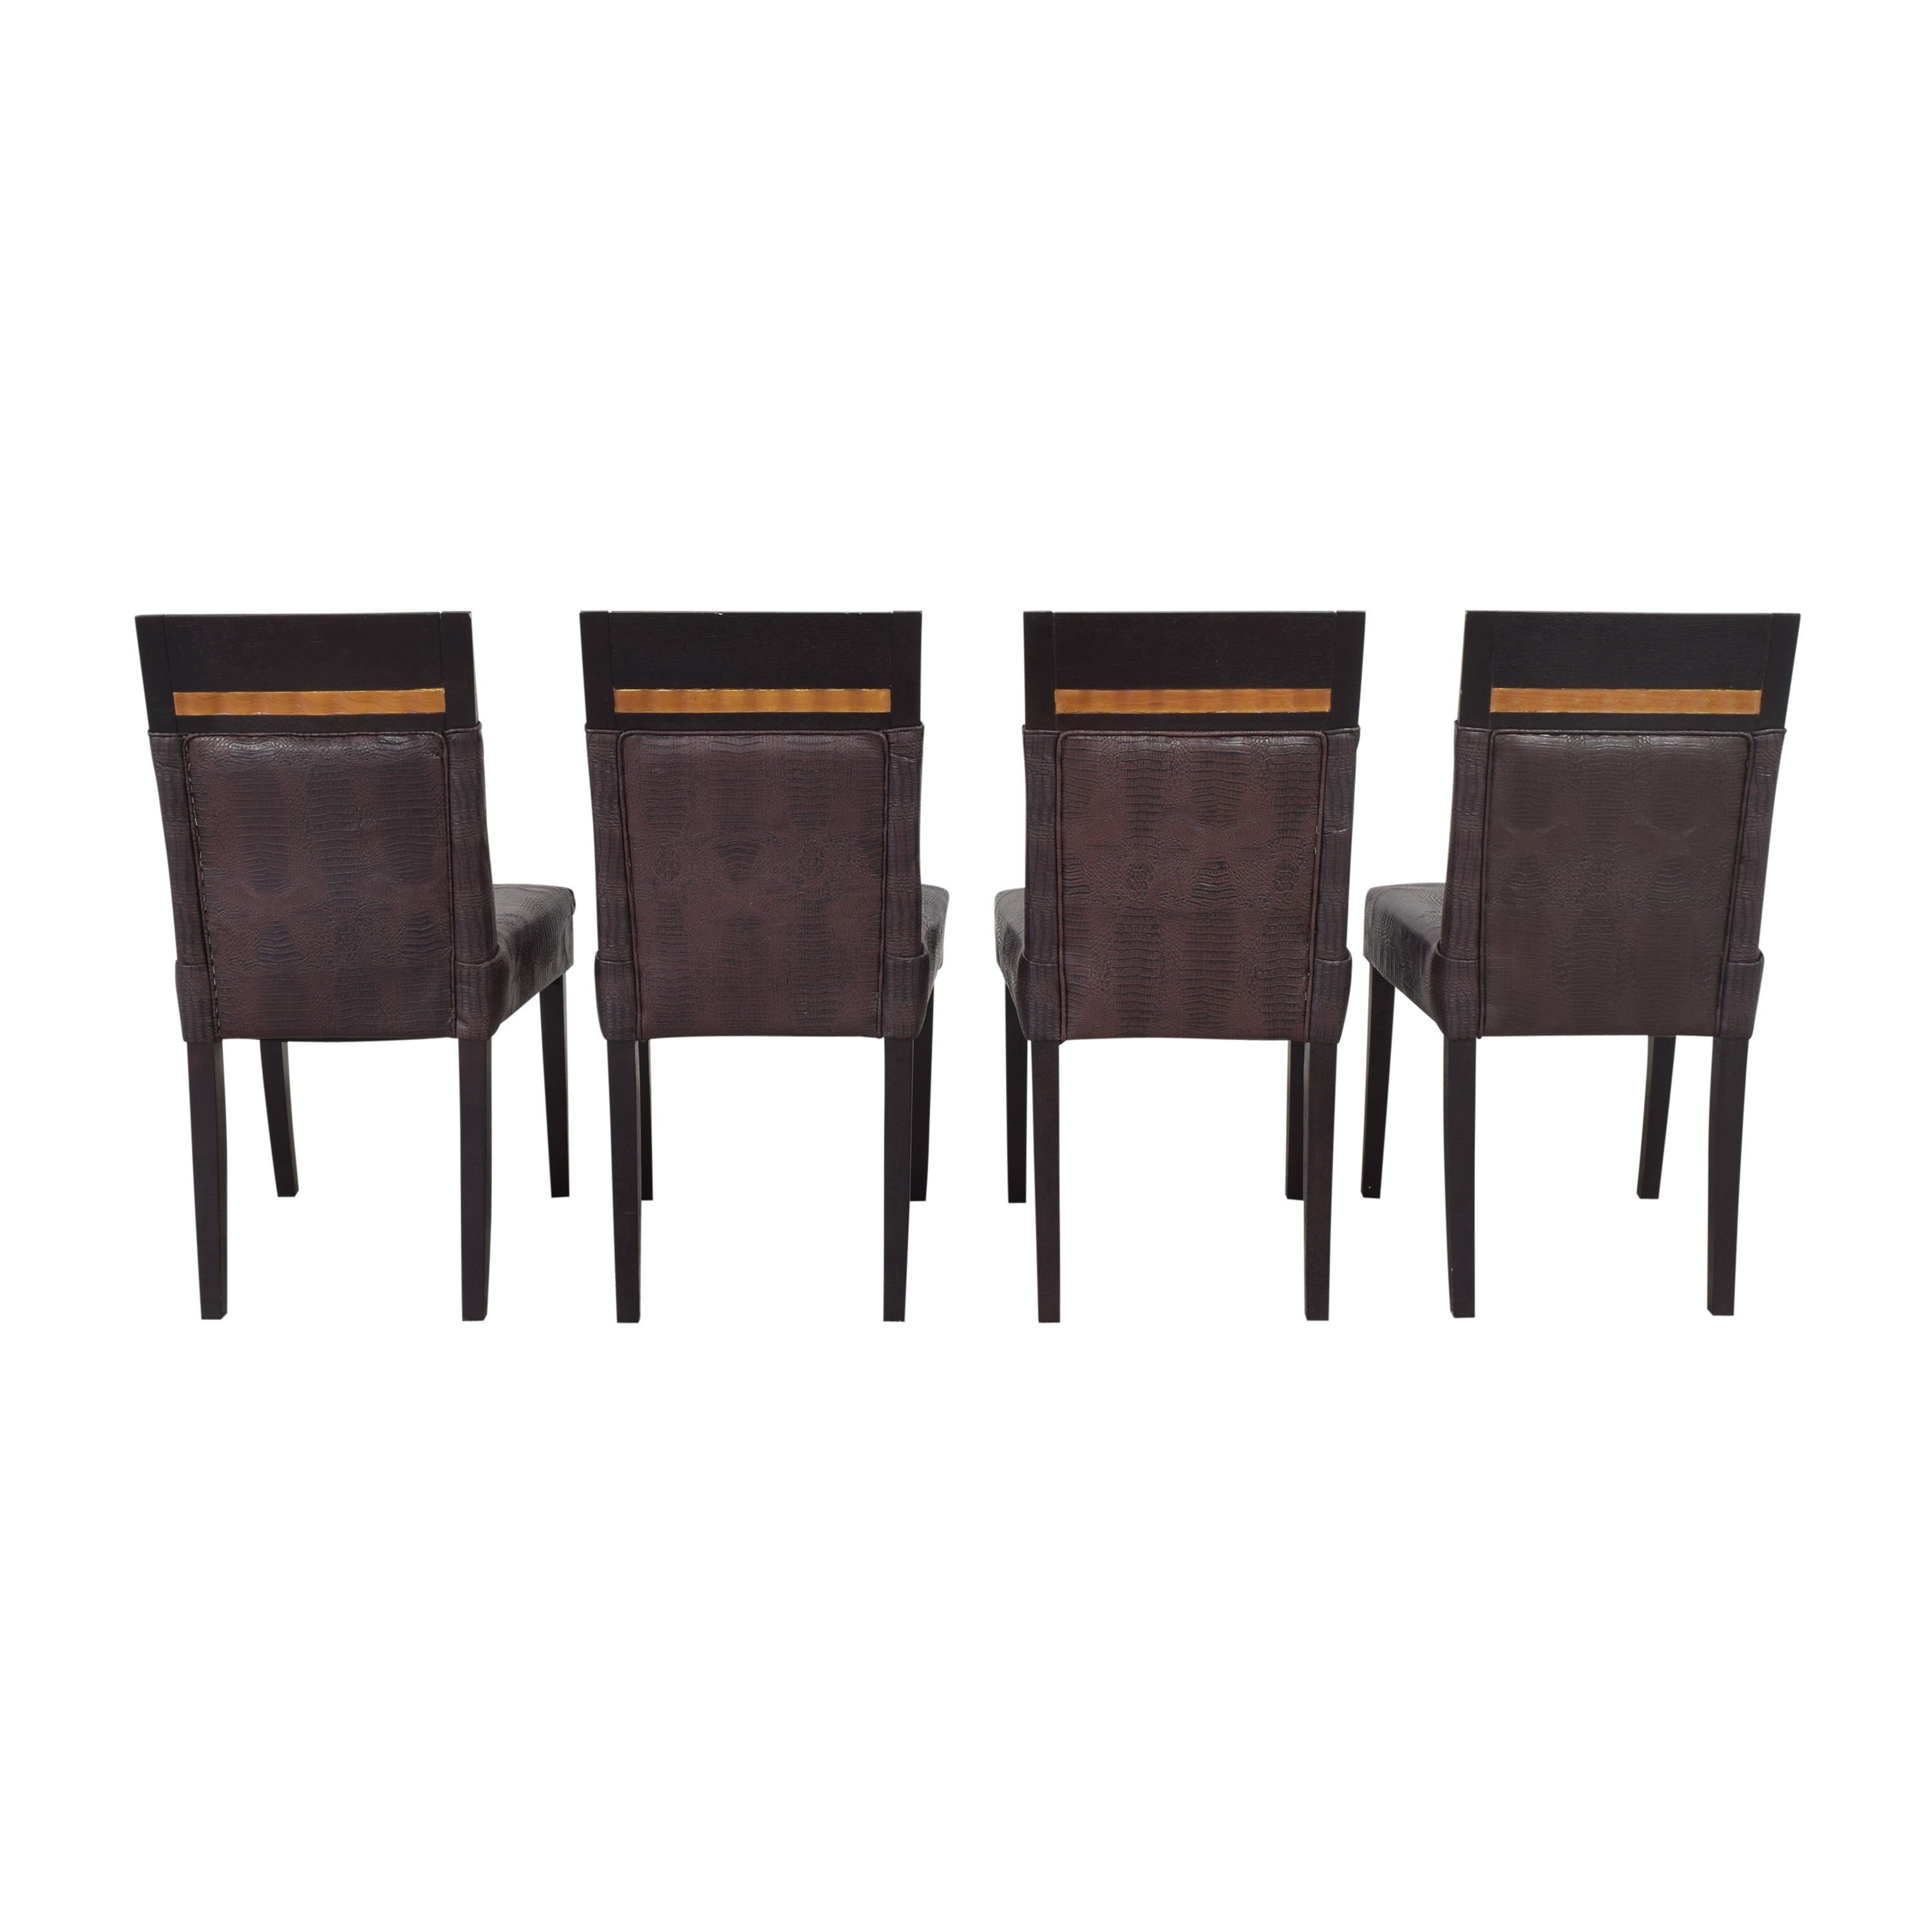 Modern Upholstered Dining Chairs on sale